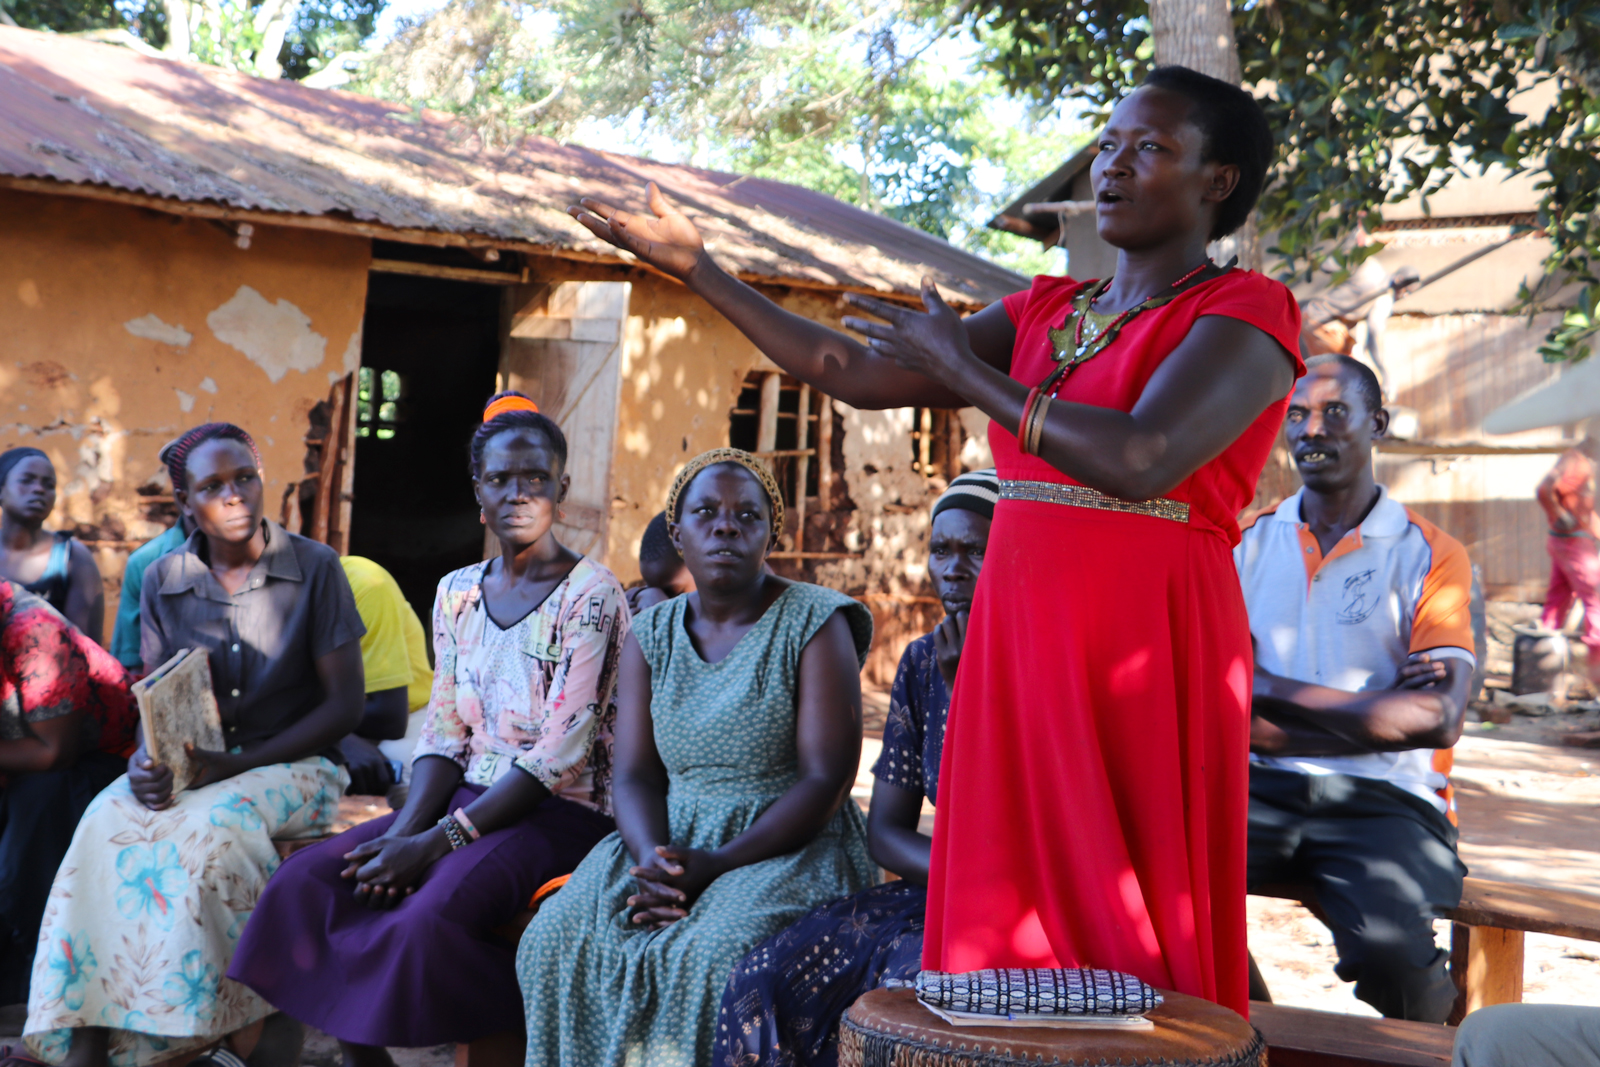 At an outdoor meeting of farmers in Uganda, a woman stands and speaks to the group